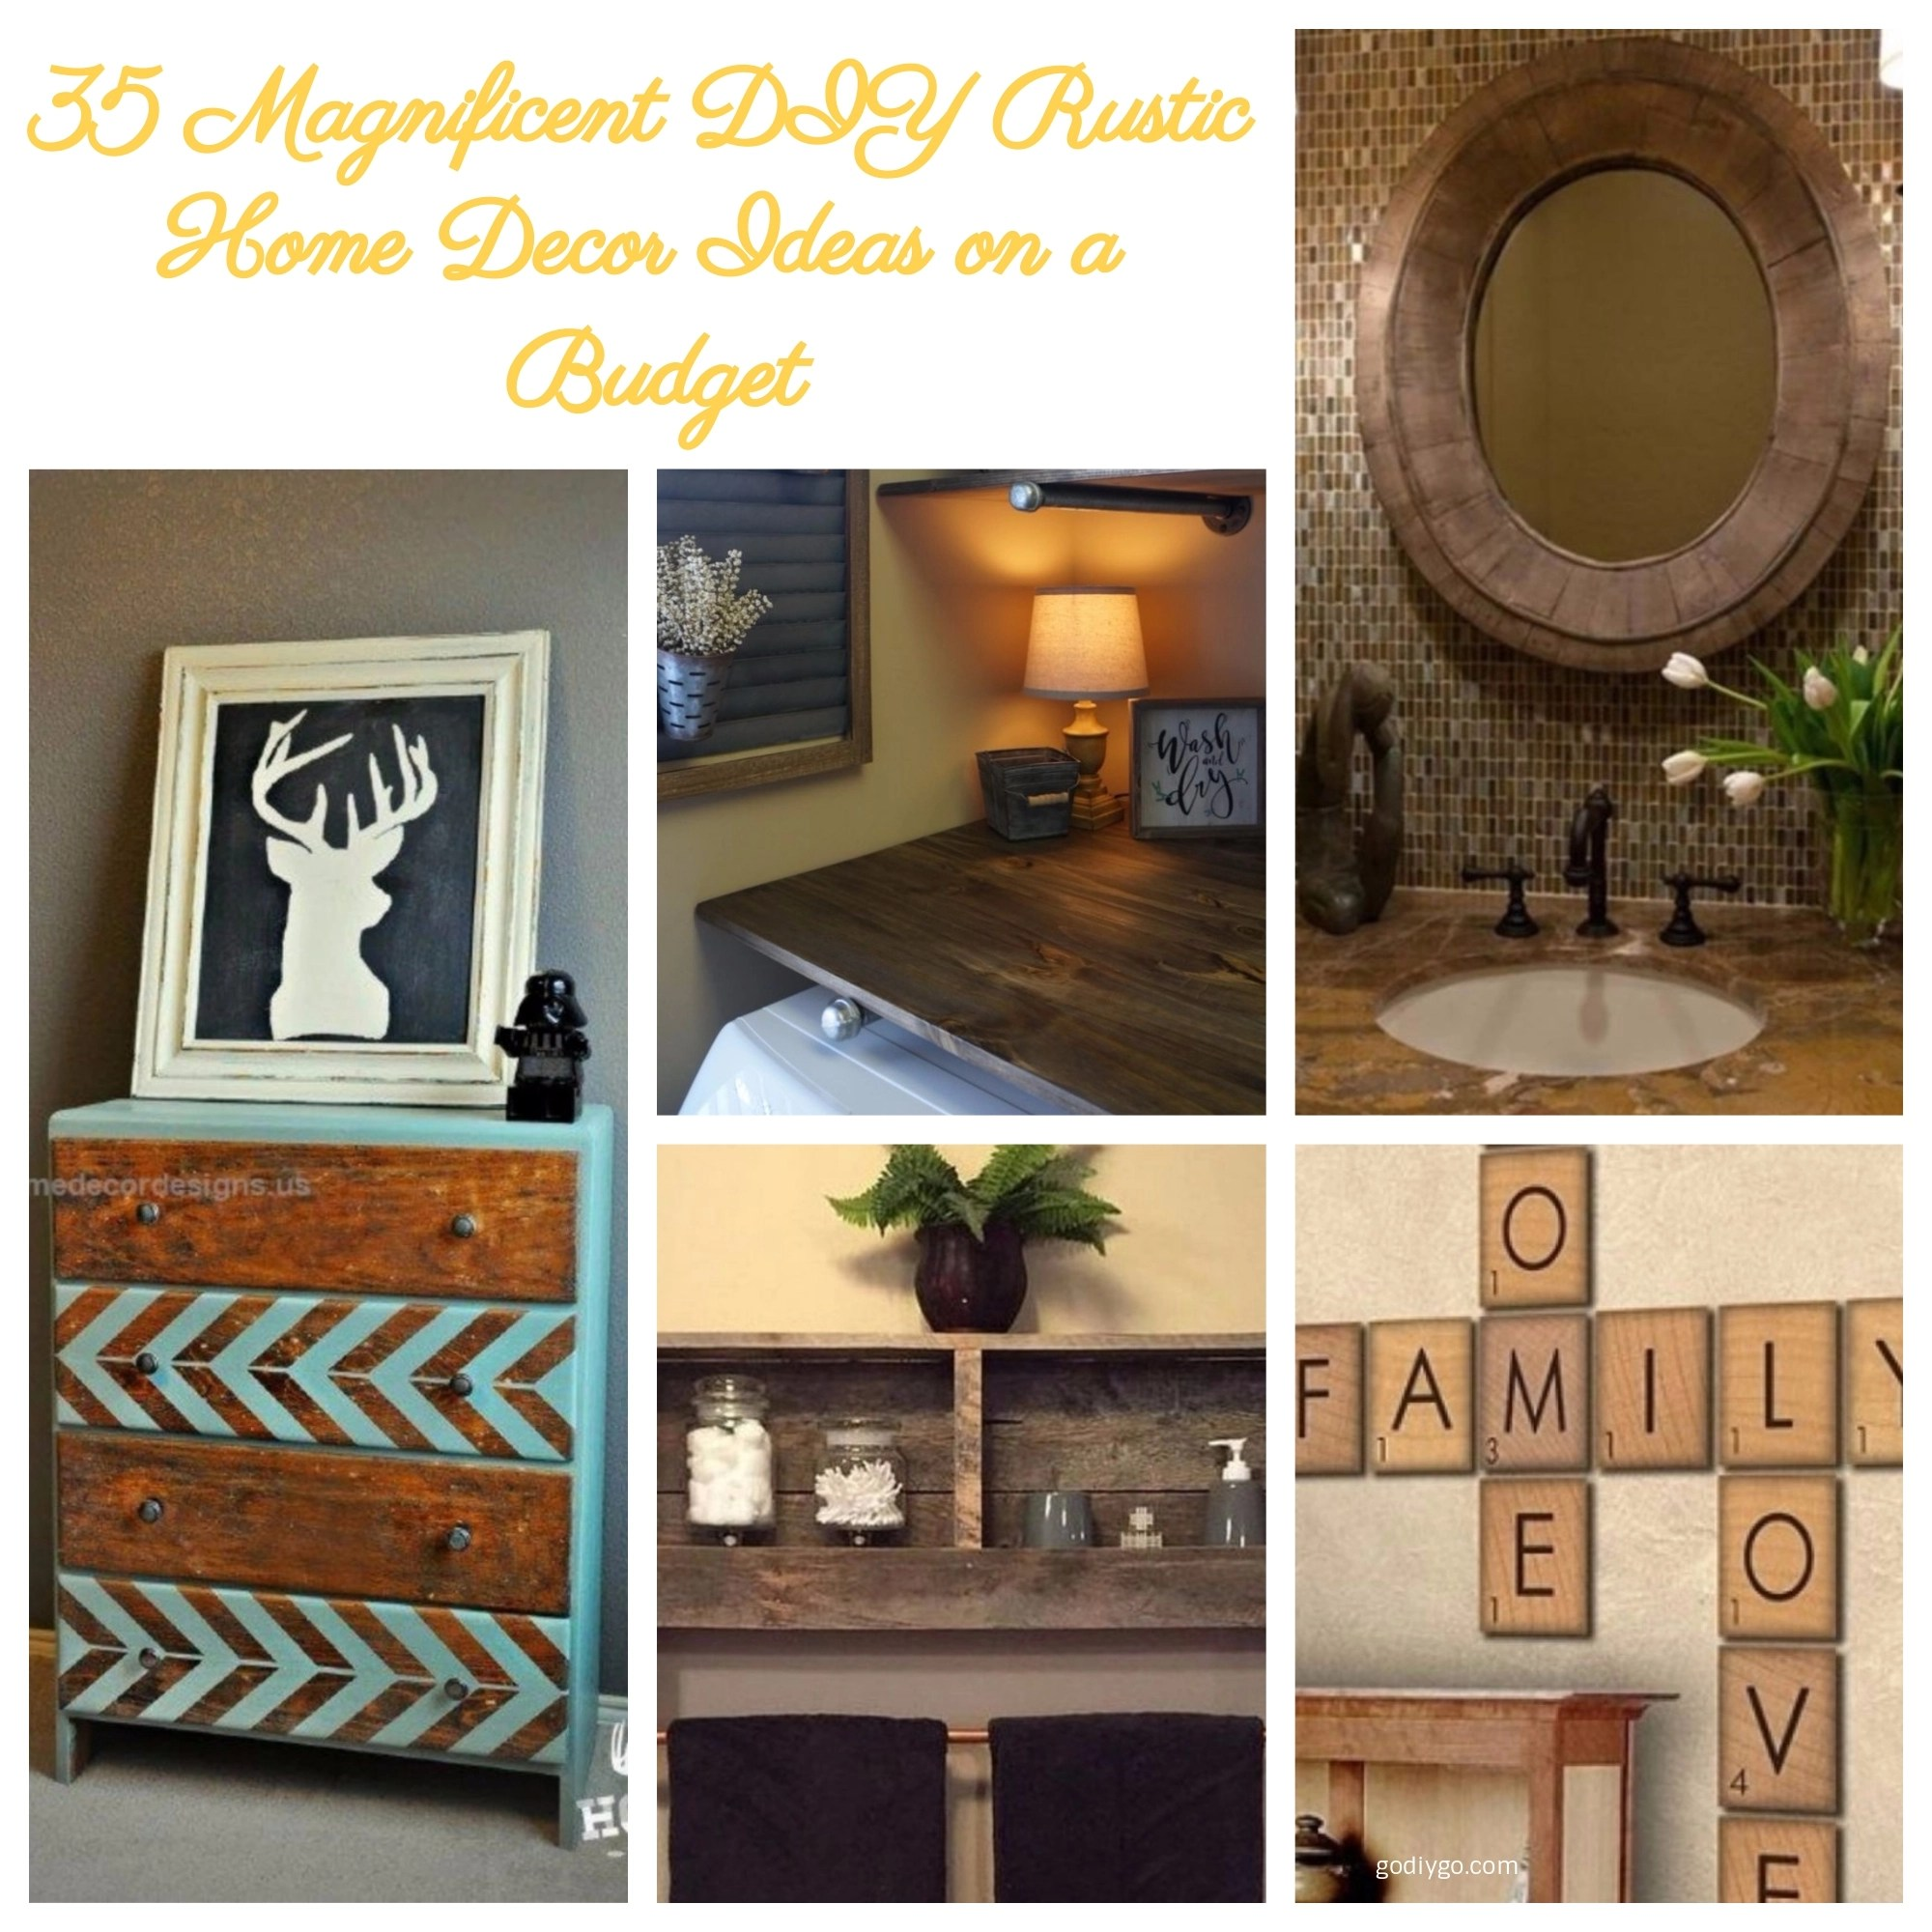 35 Magnificent DIY Rustic Home Decor Ideas on a Budget ...